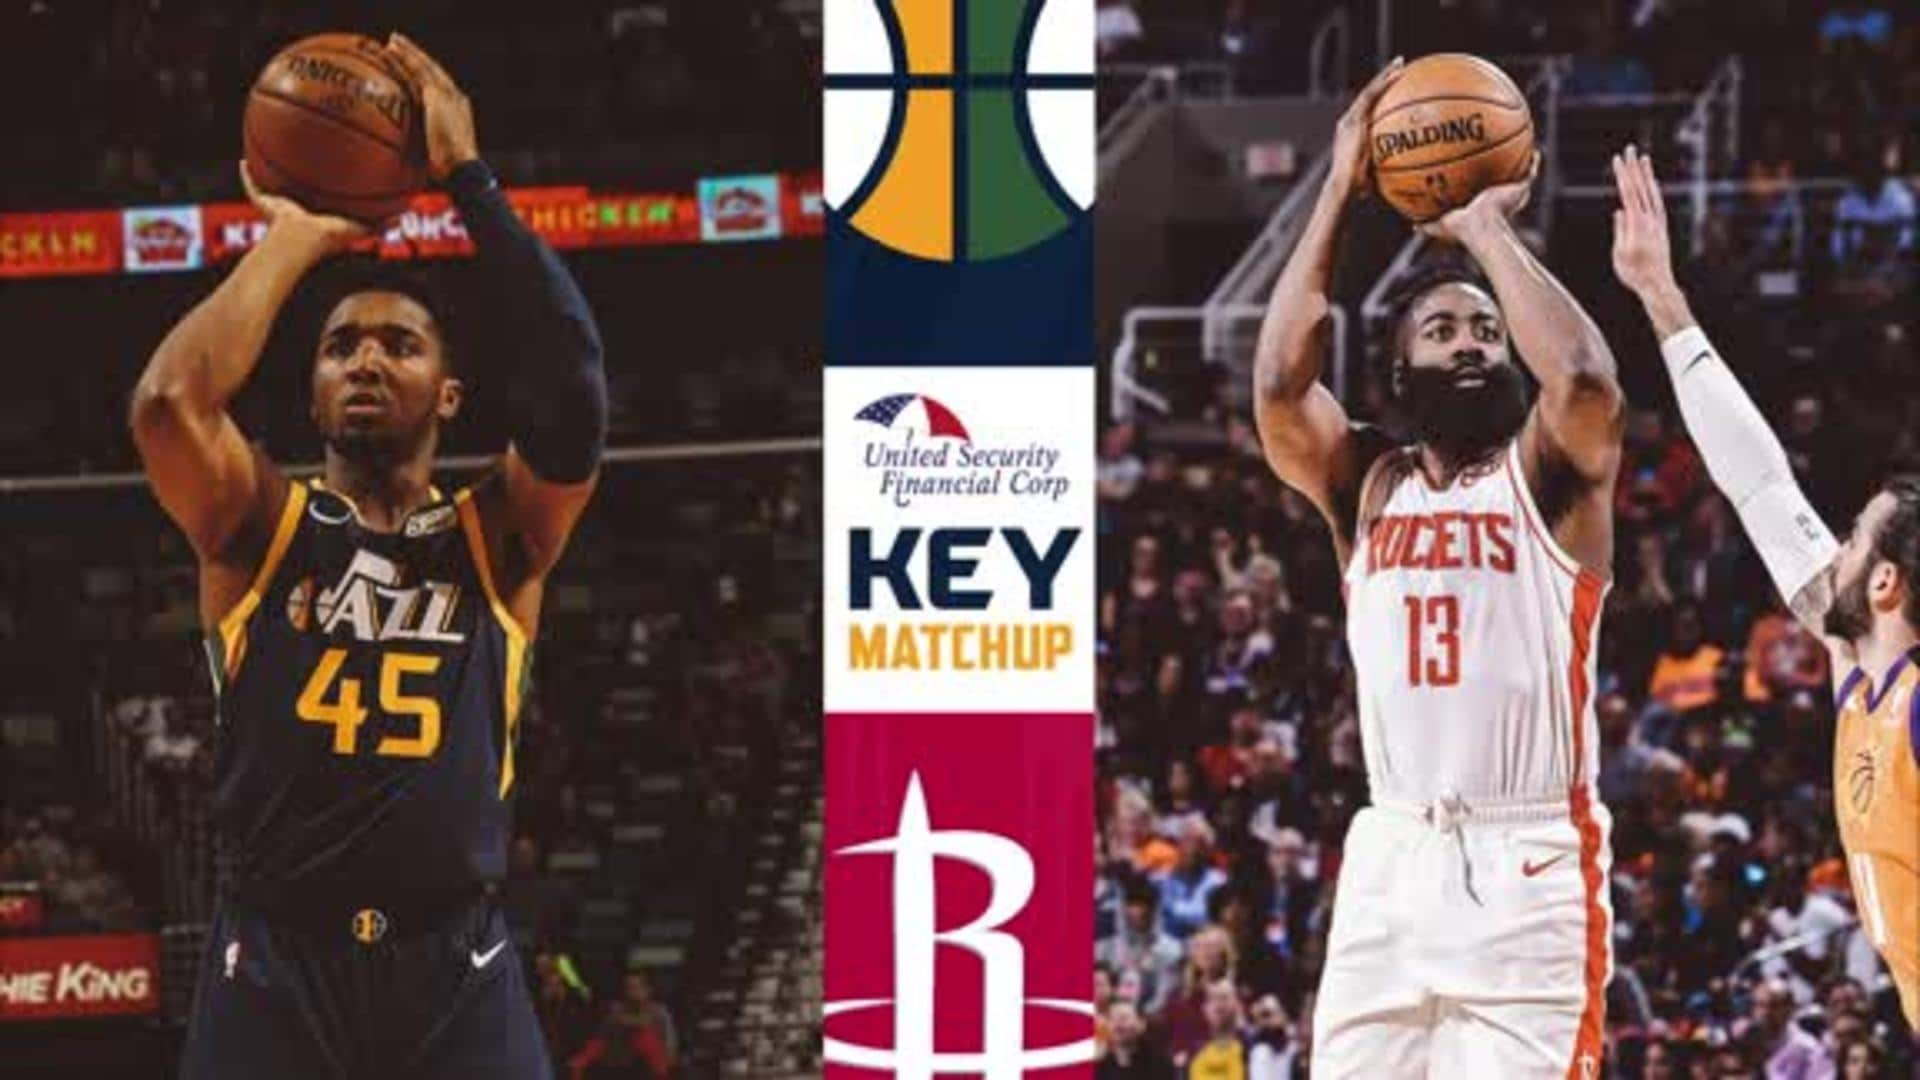 Key Matchup: Donovan Mitchell vs. James Harden